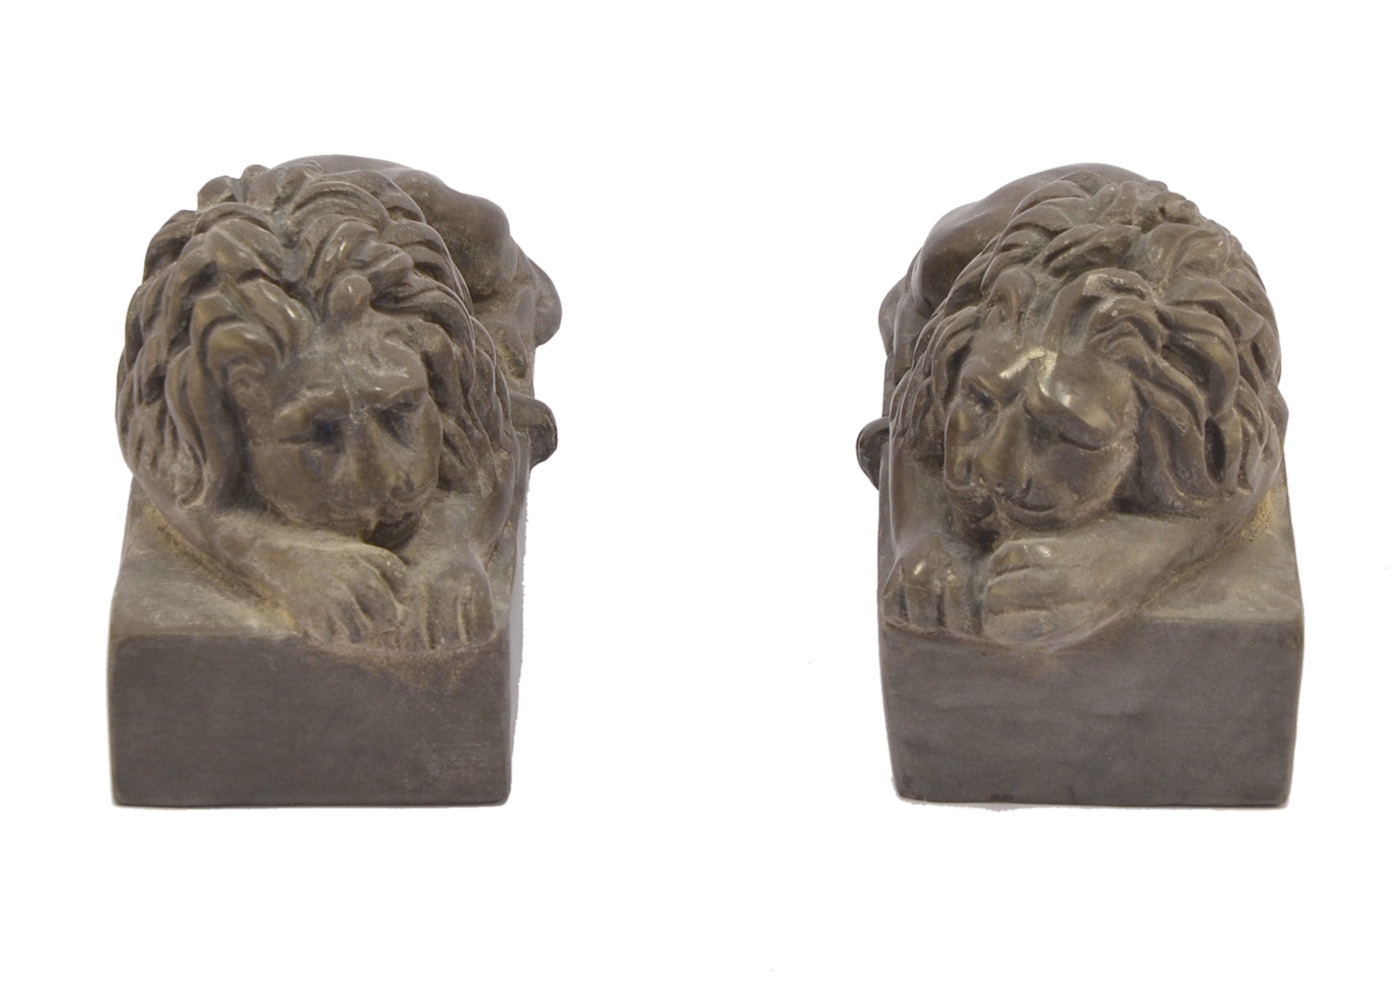 Buy Marble Couple Lions Carved Italian 17457758   Italy2Us.com